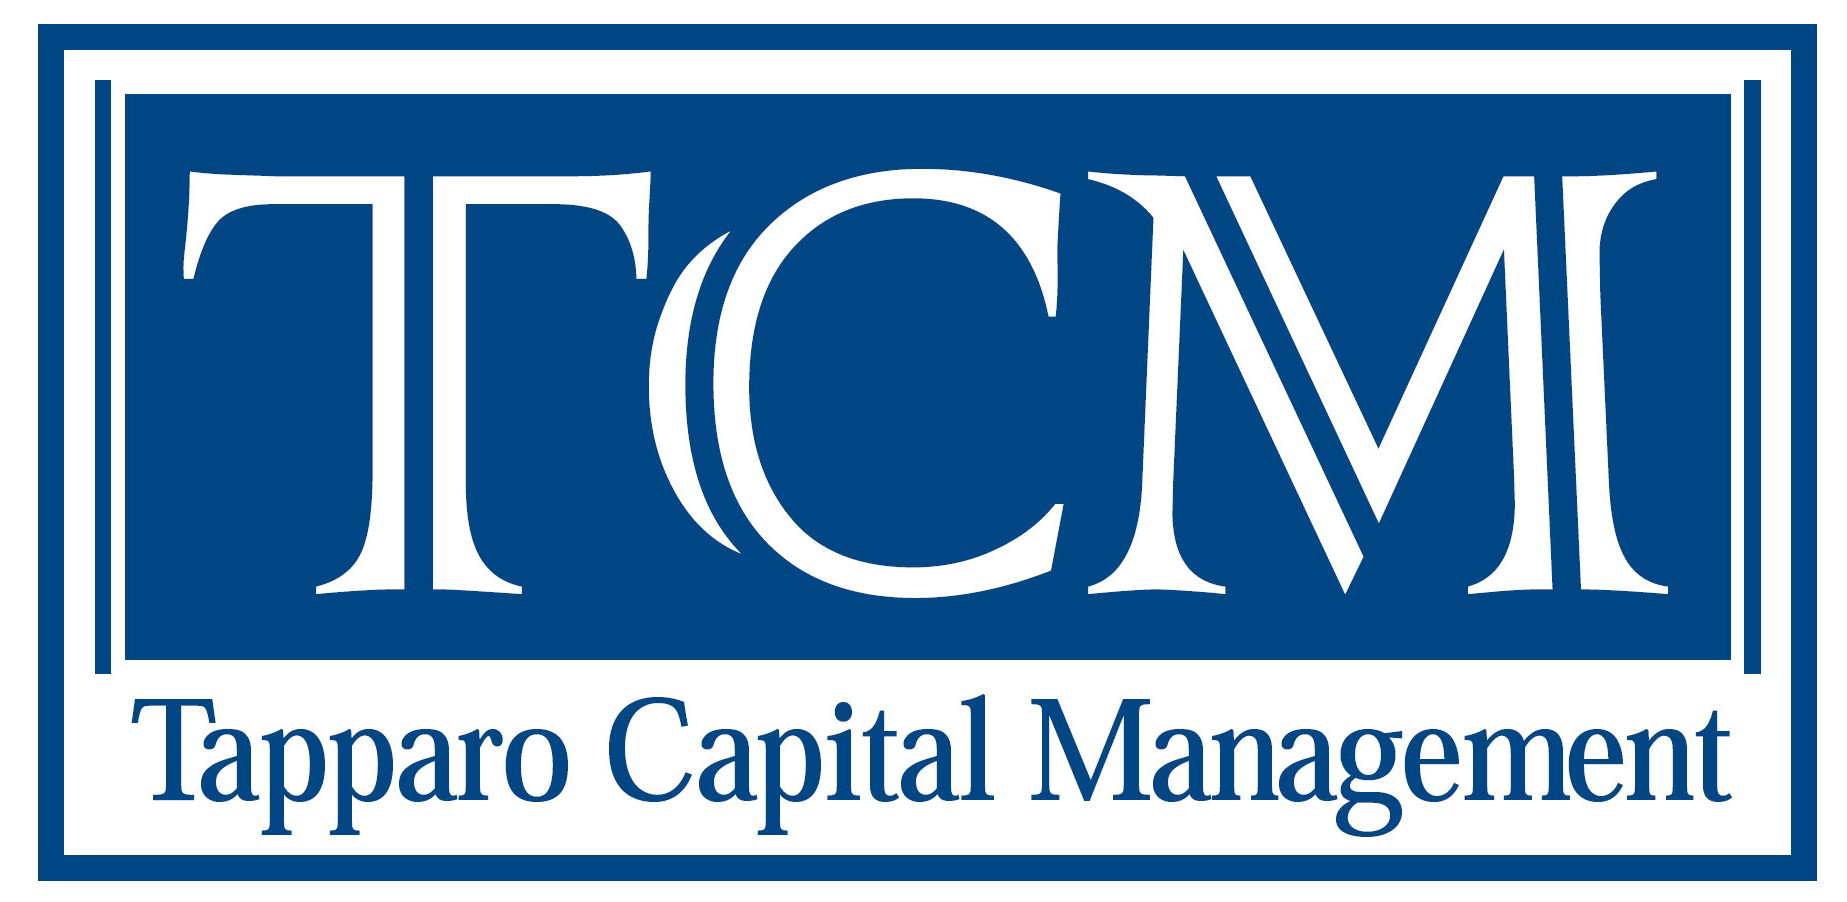 Tapparo Capital Management Middleton, MA Tapparo Capital Management